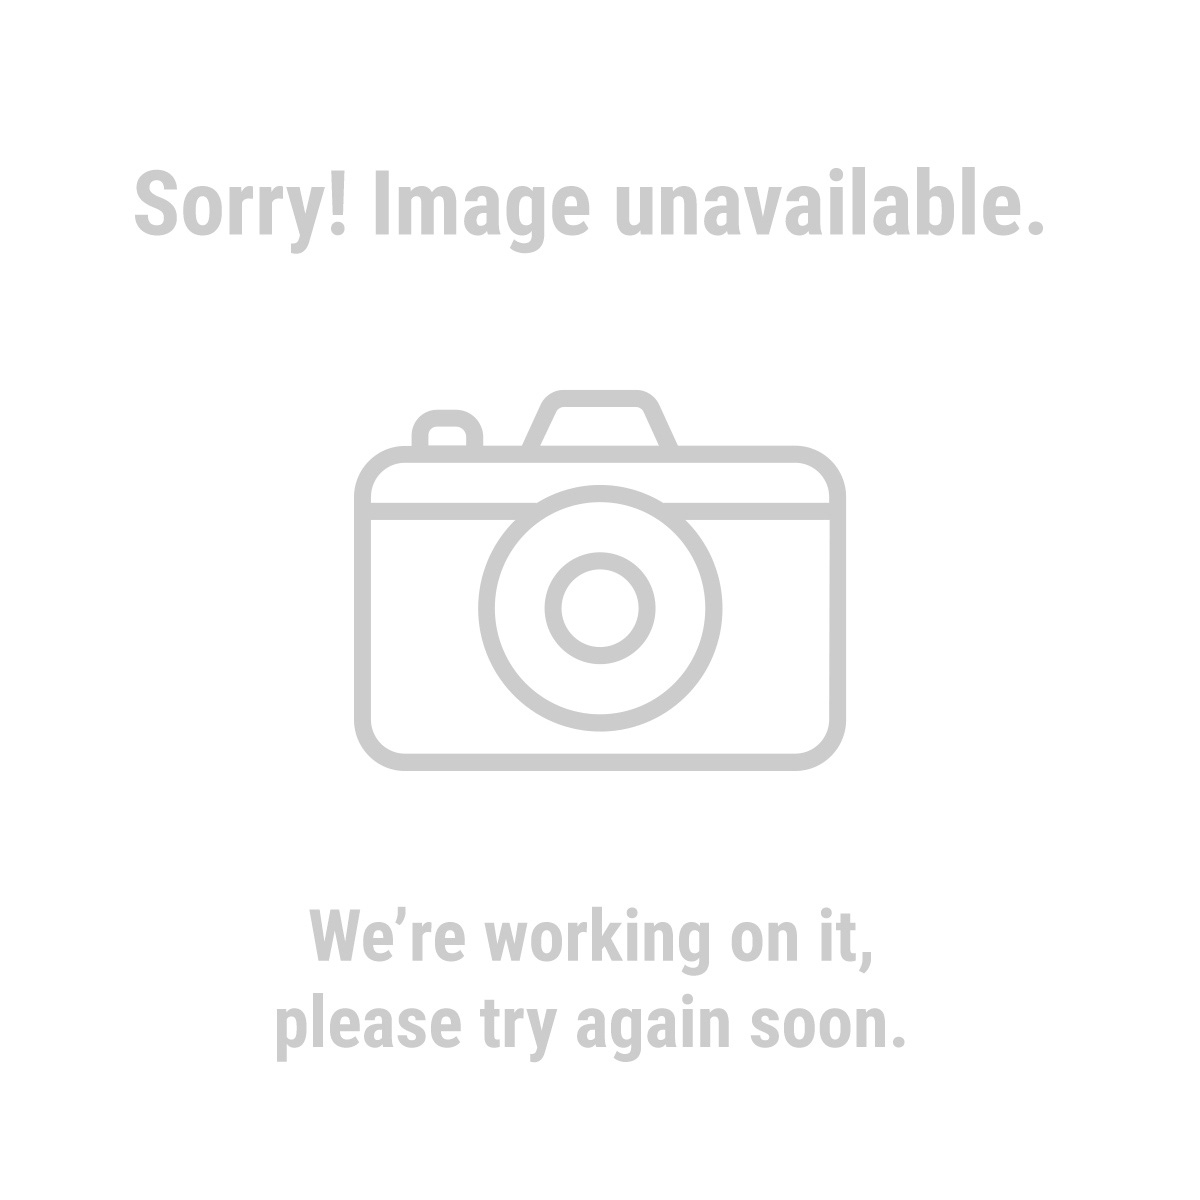 Haul Master Shop 97568 600 lb. Capacity Bigfoot Hand Truck